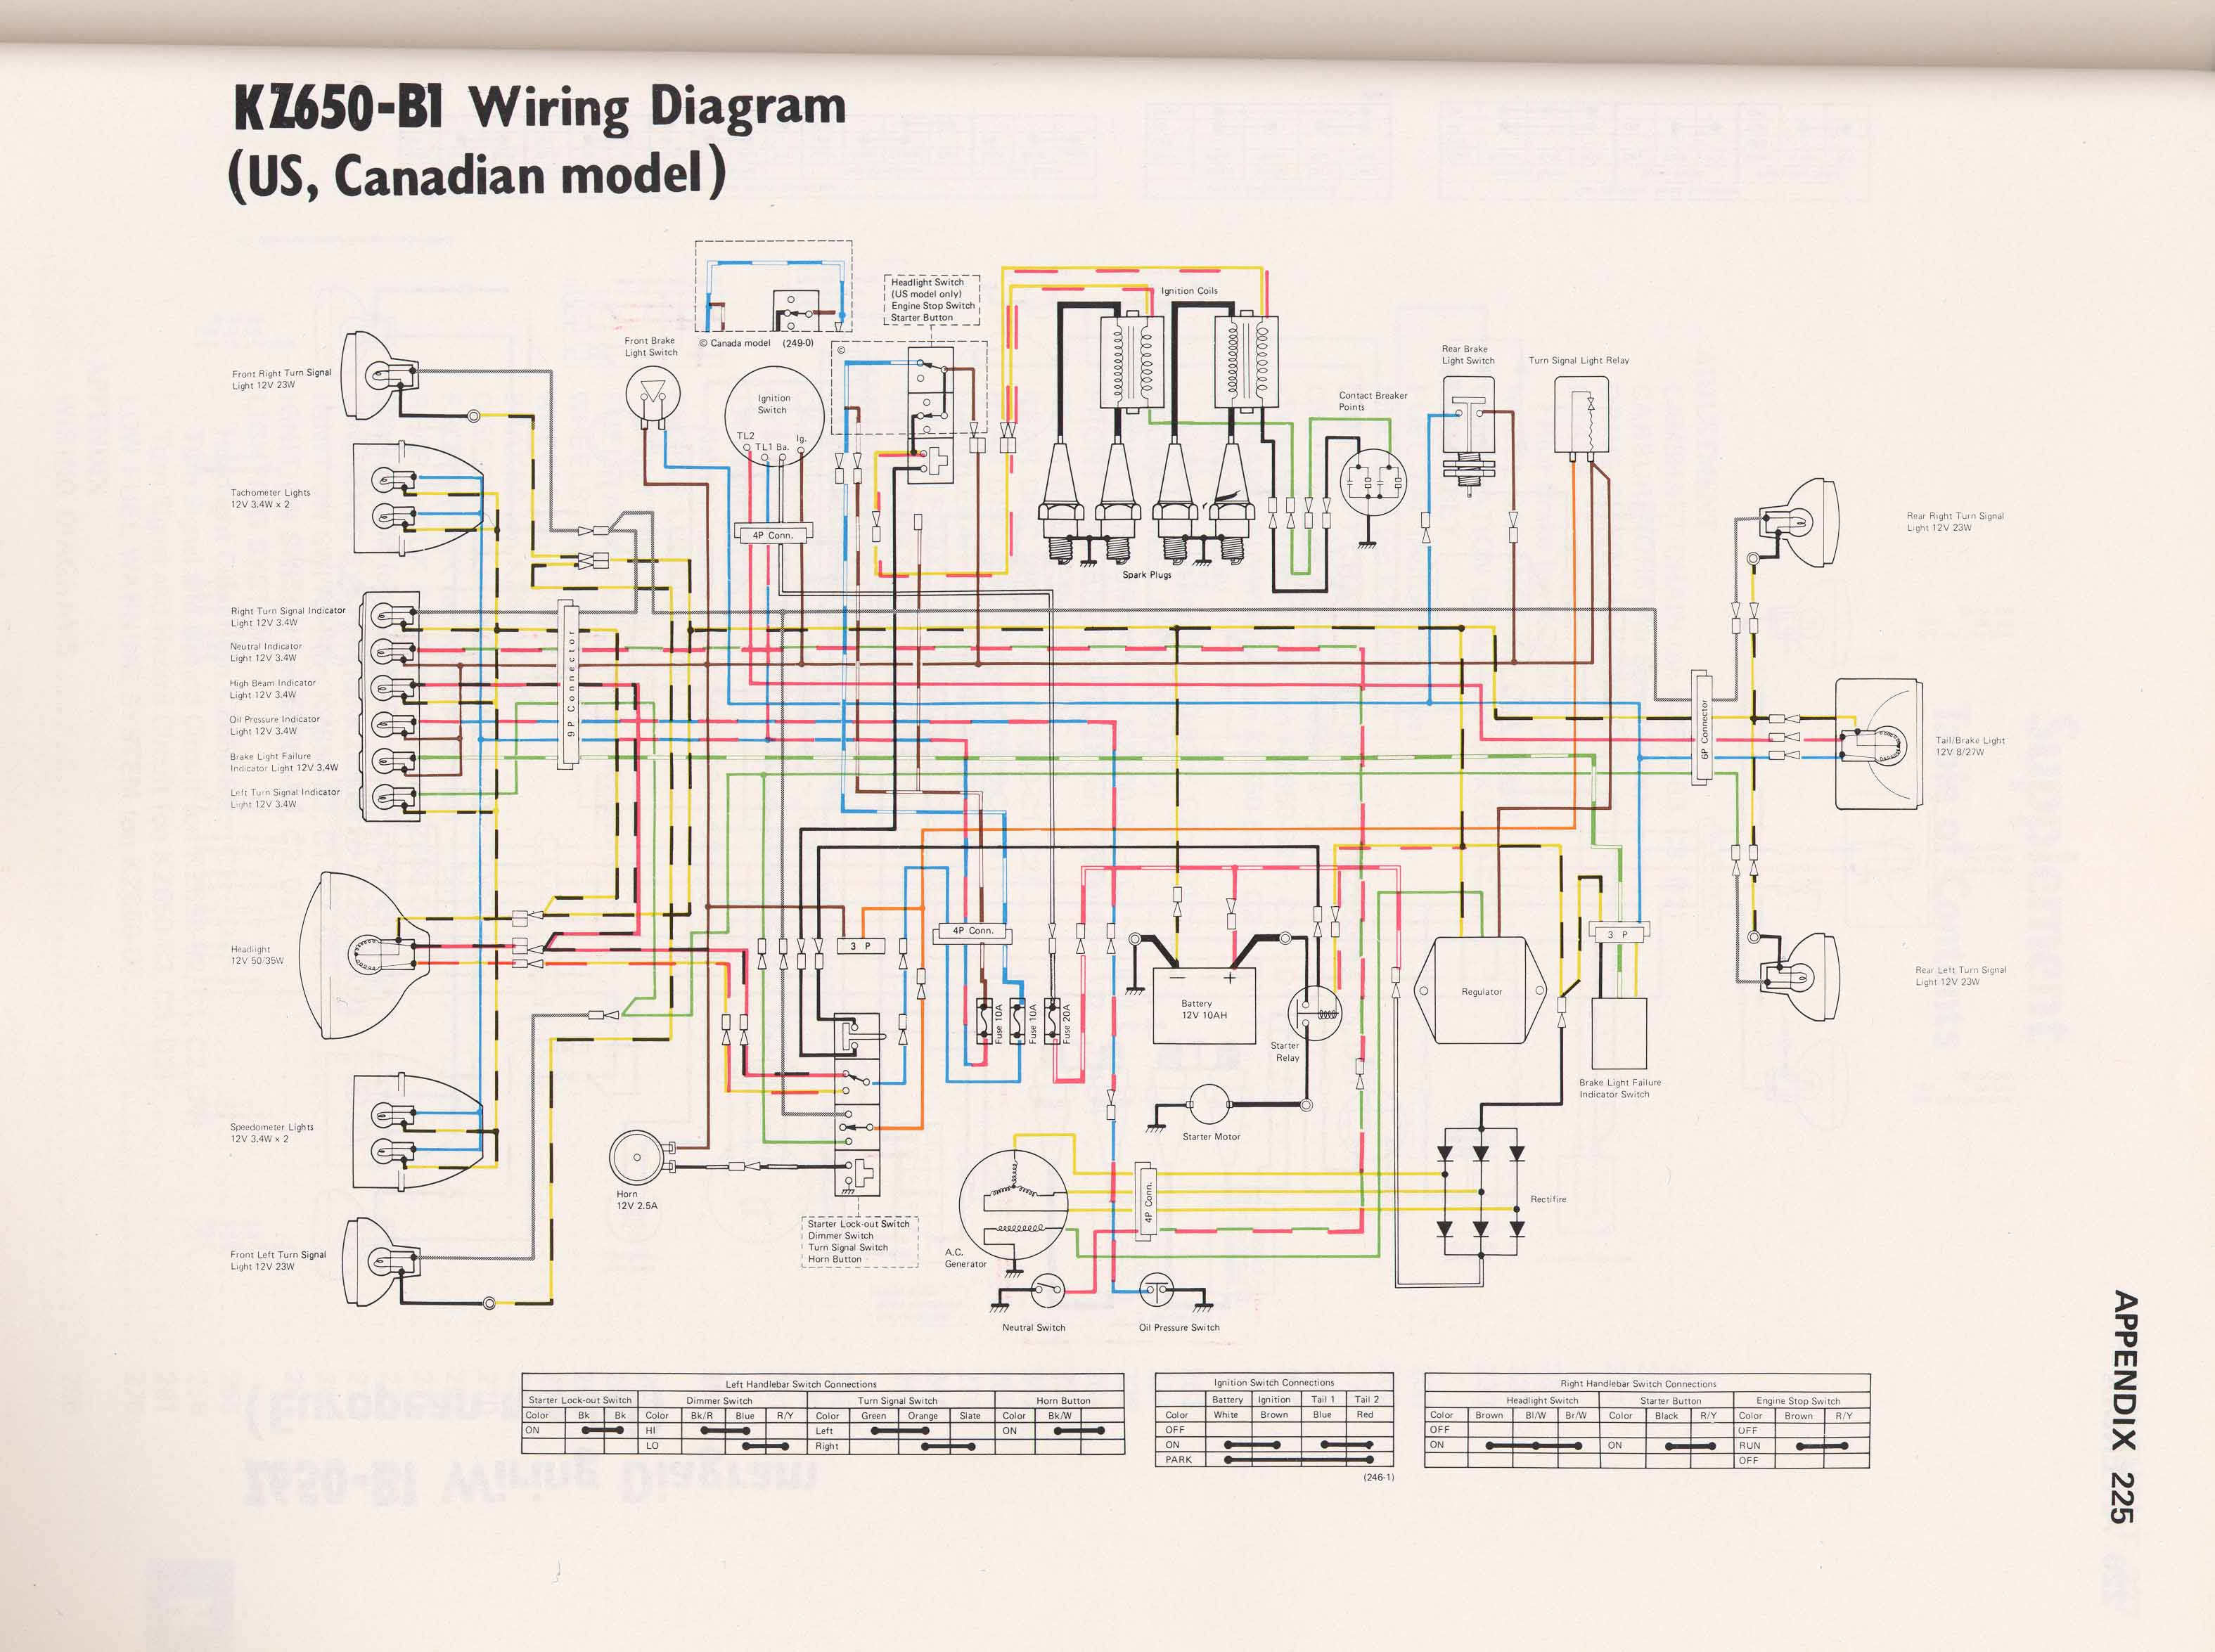 KZ650 B1 kz650 info wiring diagrams kawasaki wiring diagram at bayanpartner.co